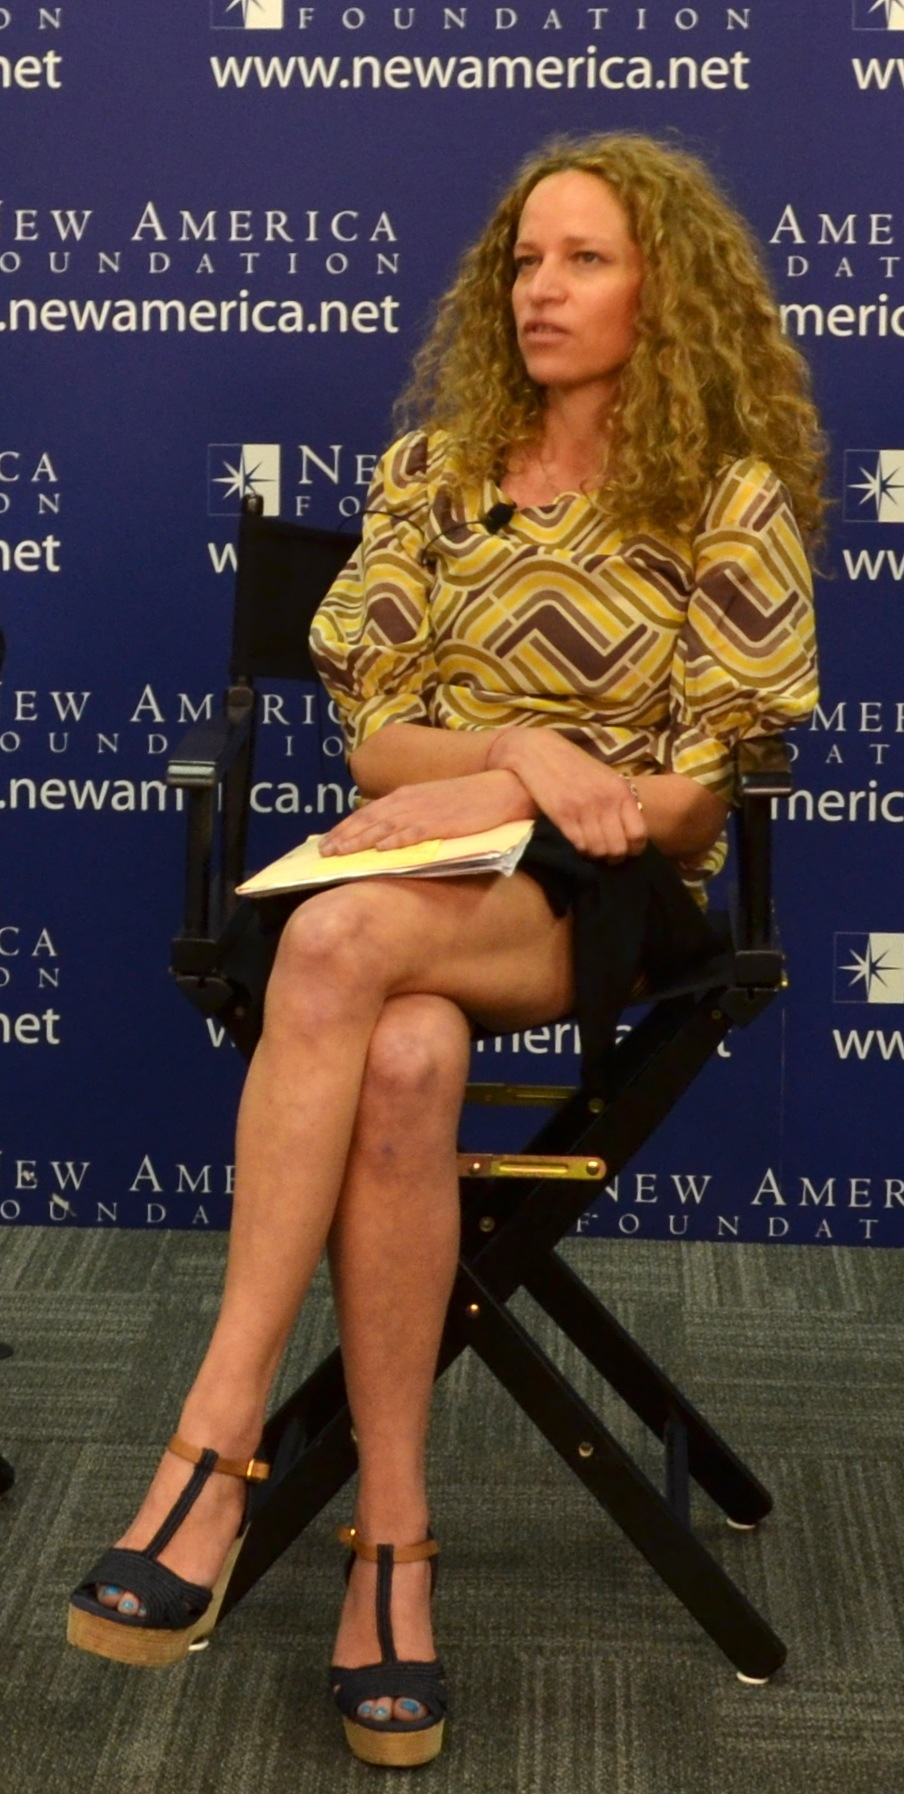 Katie Roiphe at [[New America (organization)|New America]] discussion in 2013